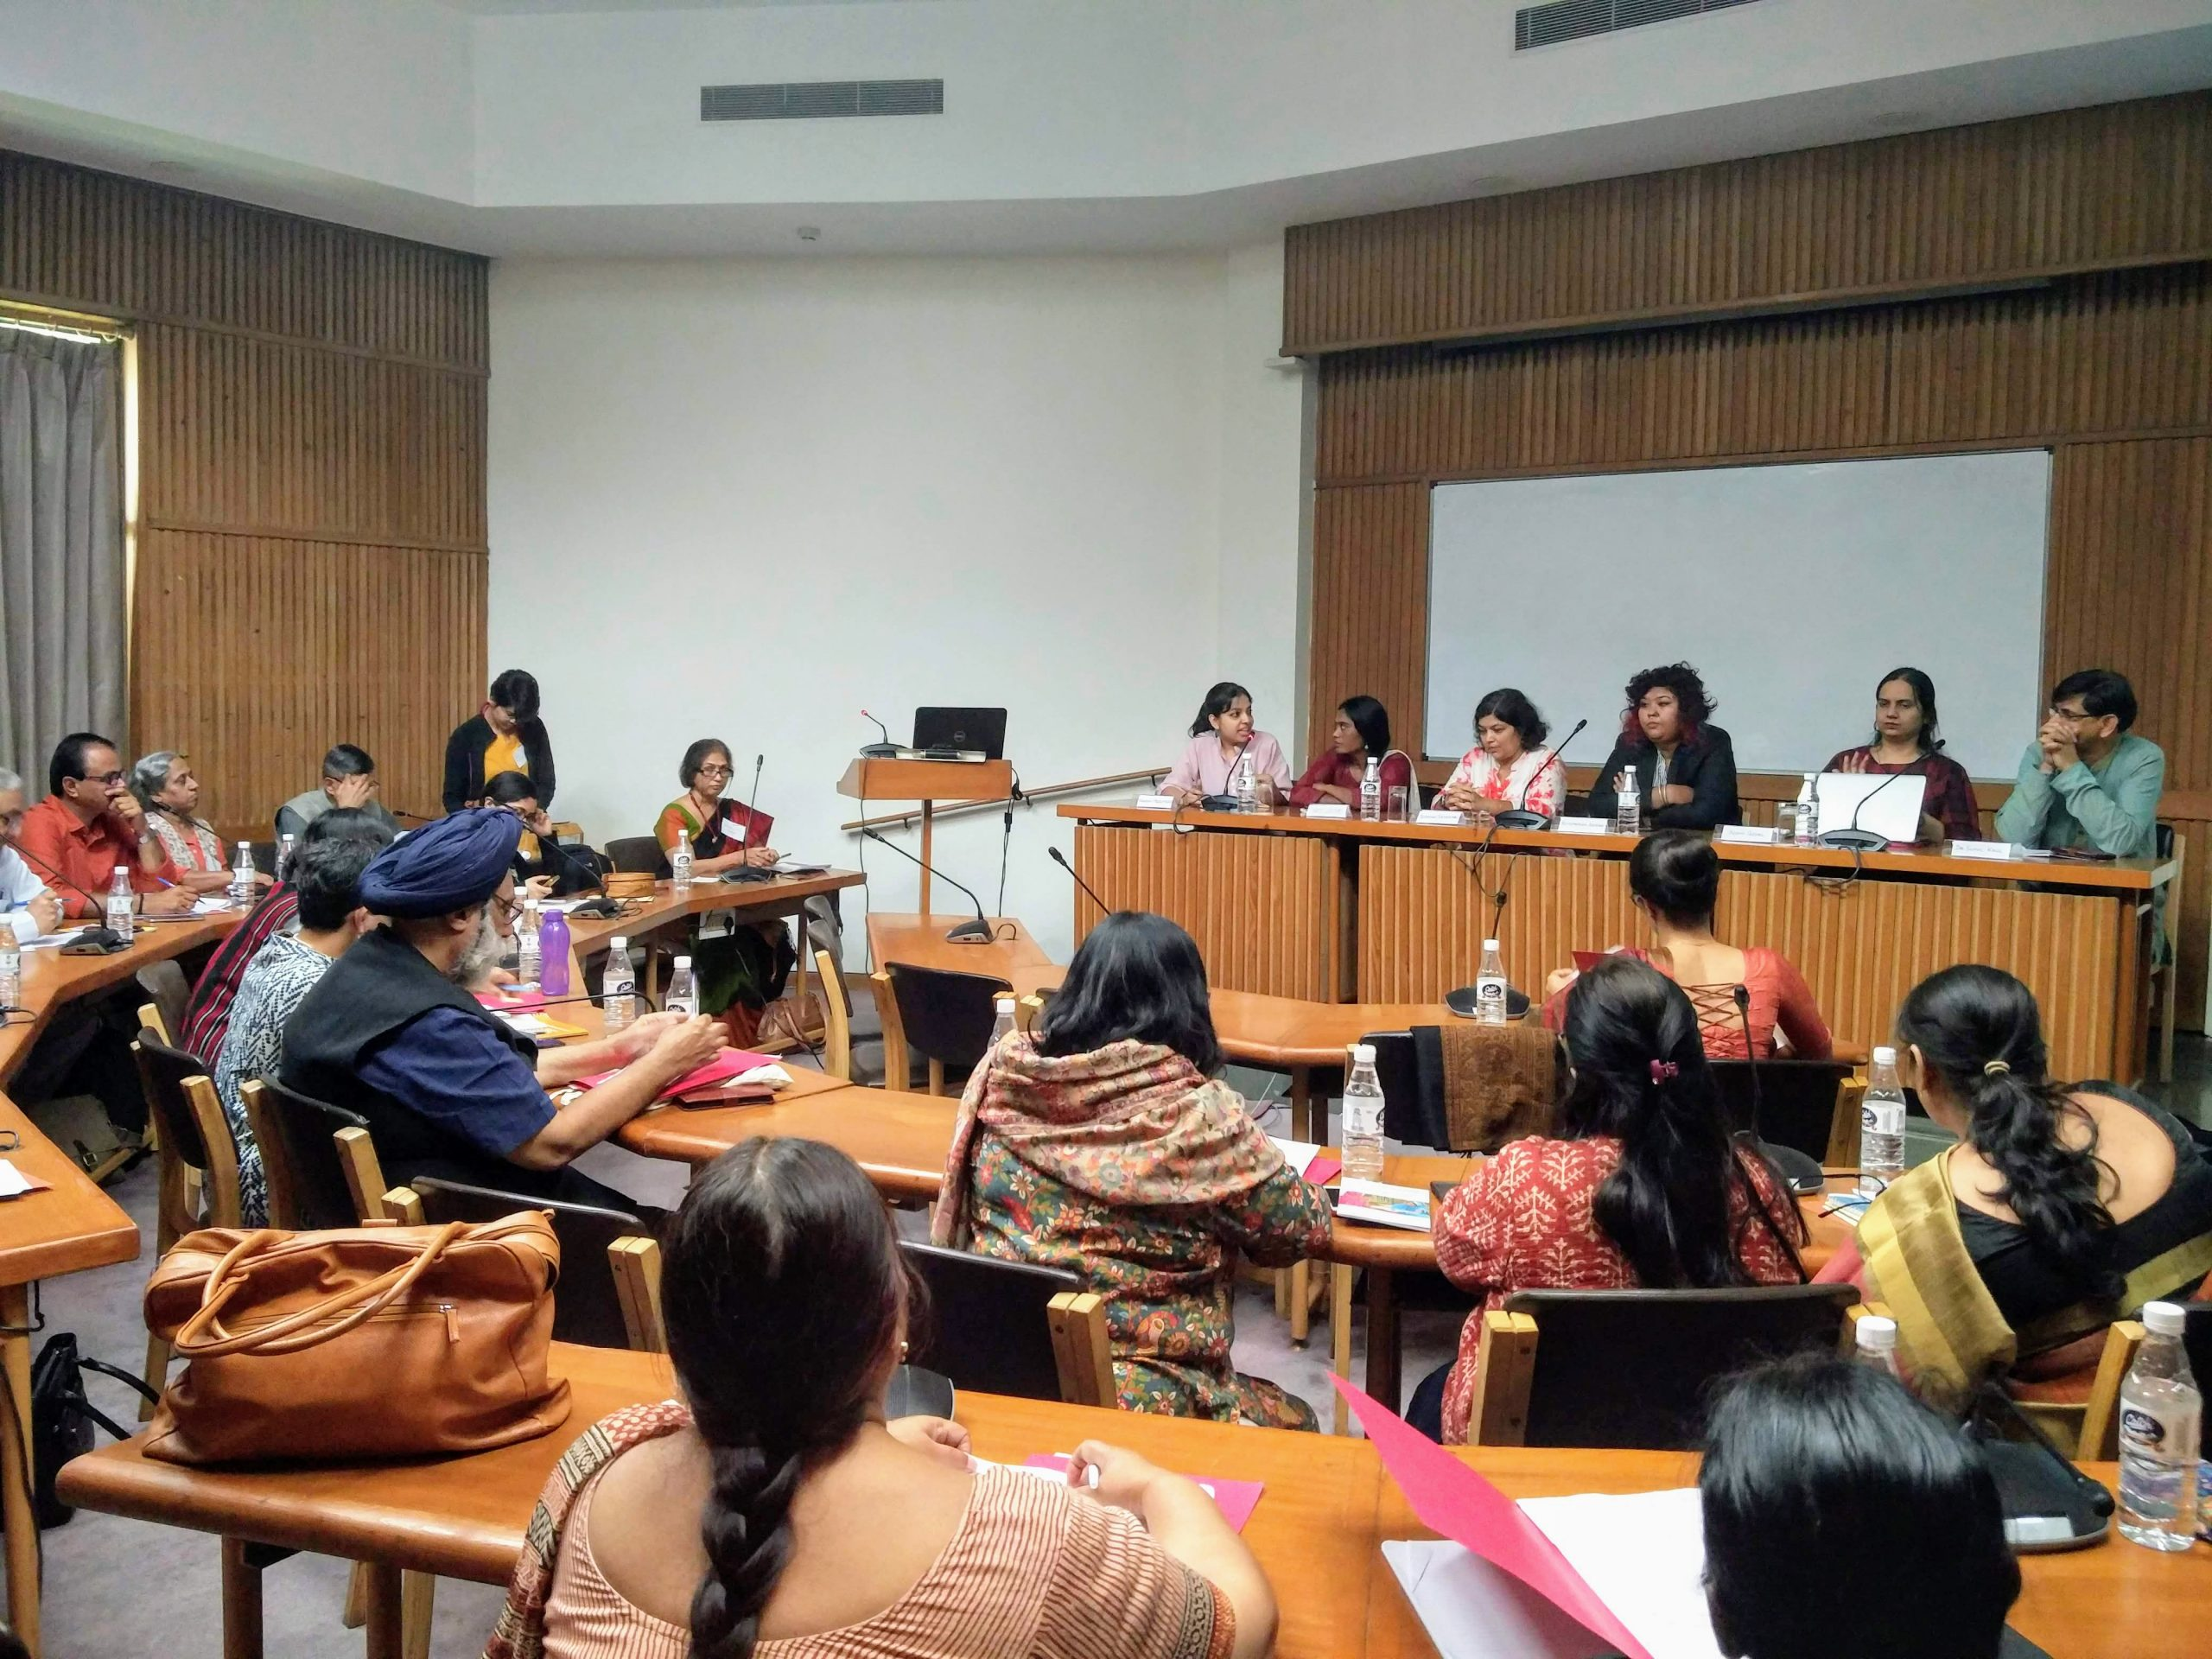 A room with brown bamboo walls. Tables arranged in multiple rows in a semi circle form. Approximately 15 people are sitting in these rows. Towards the front of the room, a long rectangualr table, at which 6 panelists sit. 2nd from the right is Nidhi Goyal. There is a laptop on the letf corner of the room on a podium.